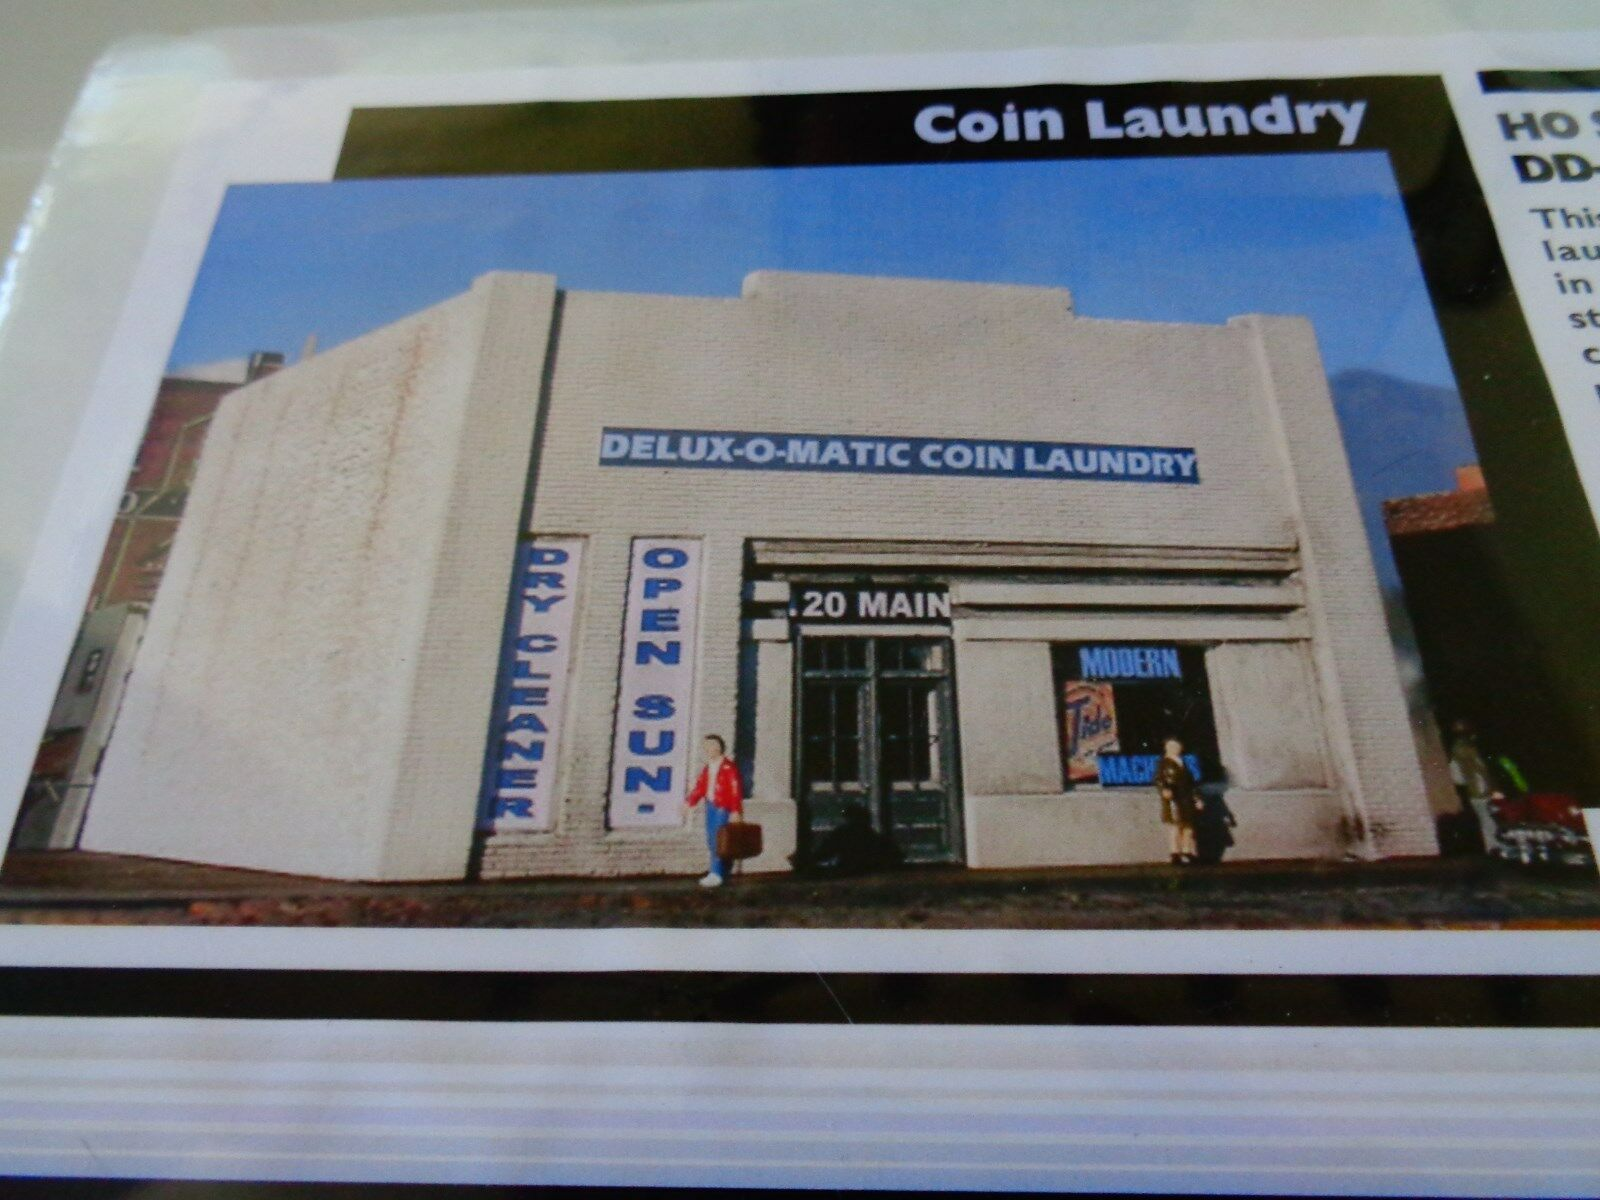 DOWNTOWN DECO - COIN LAUNDRY LIMITED DD-1028  - HYDROCAL - 1 87  HO